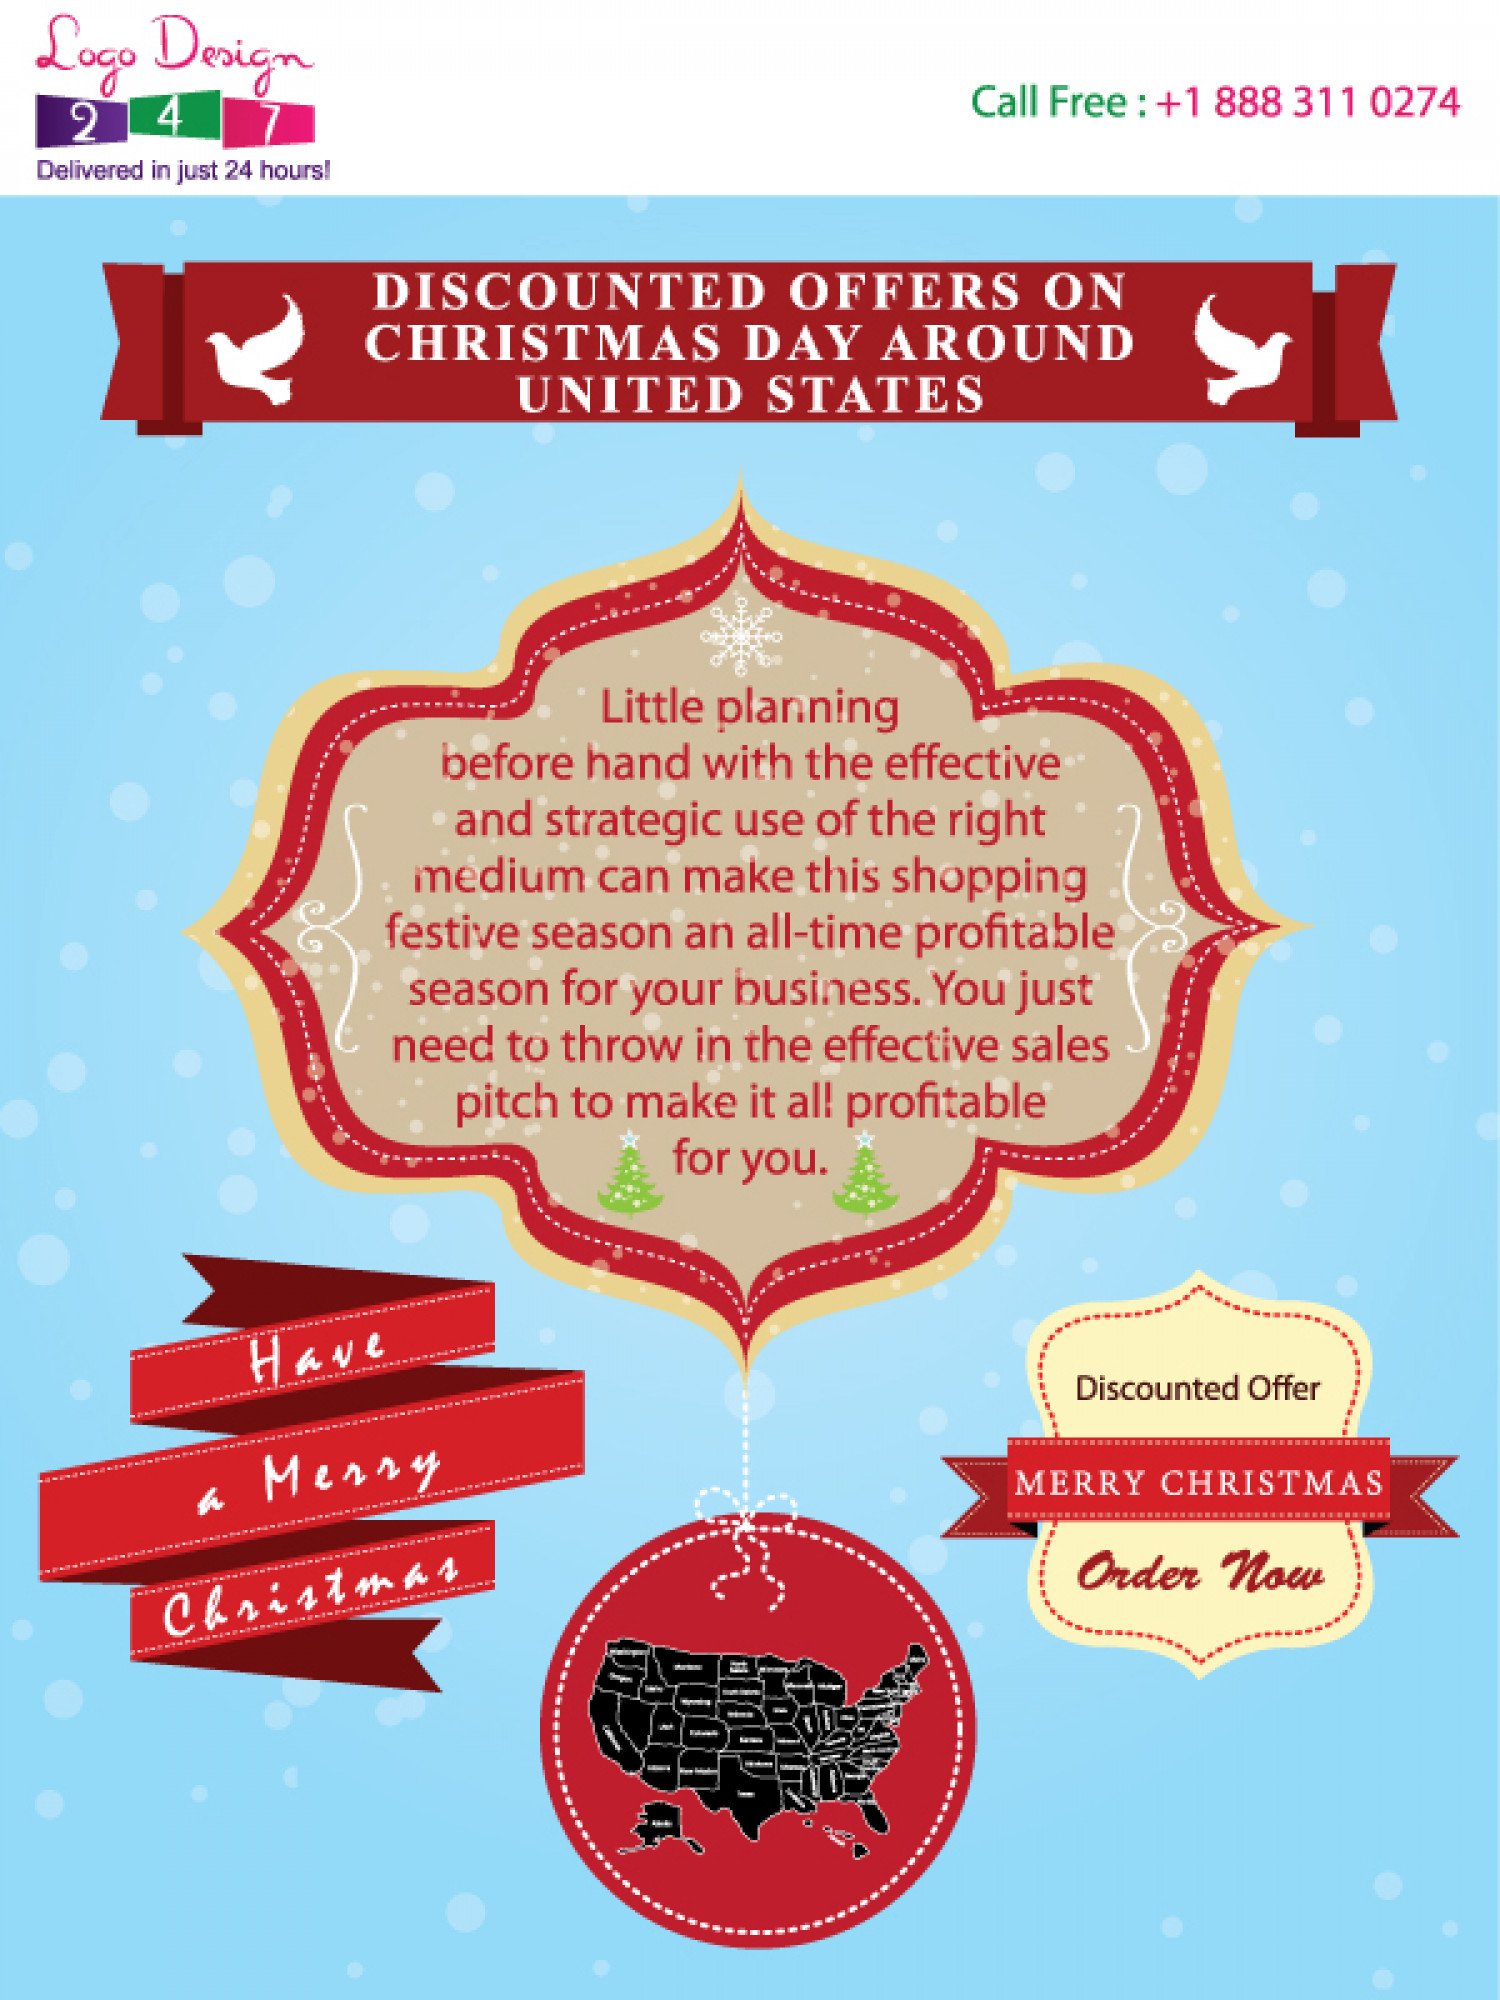 Discounted offers on Christmas Day around United States Infographic